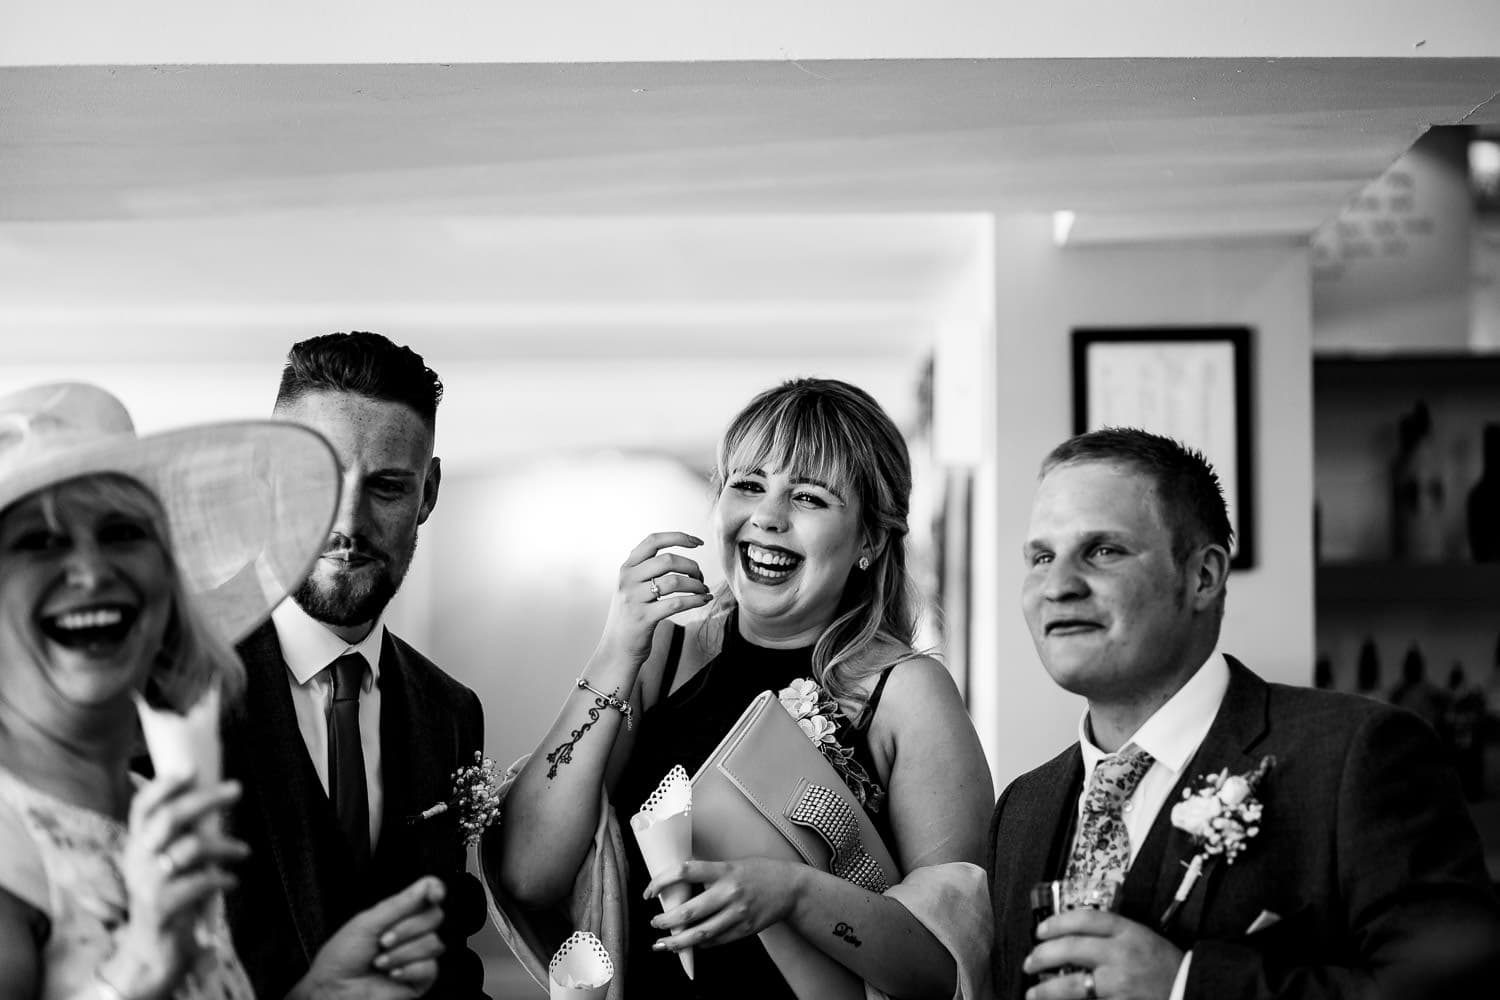 Warwick House Wedding Photography captures happy wedding guests laughing